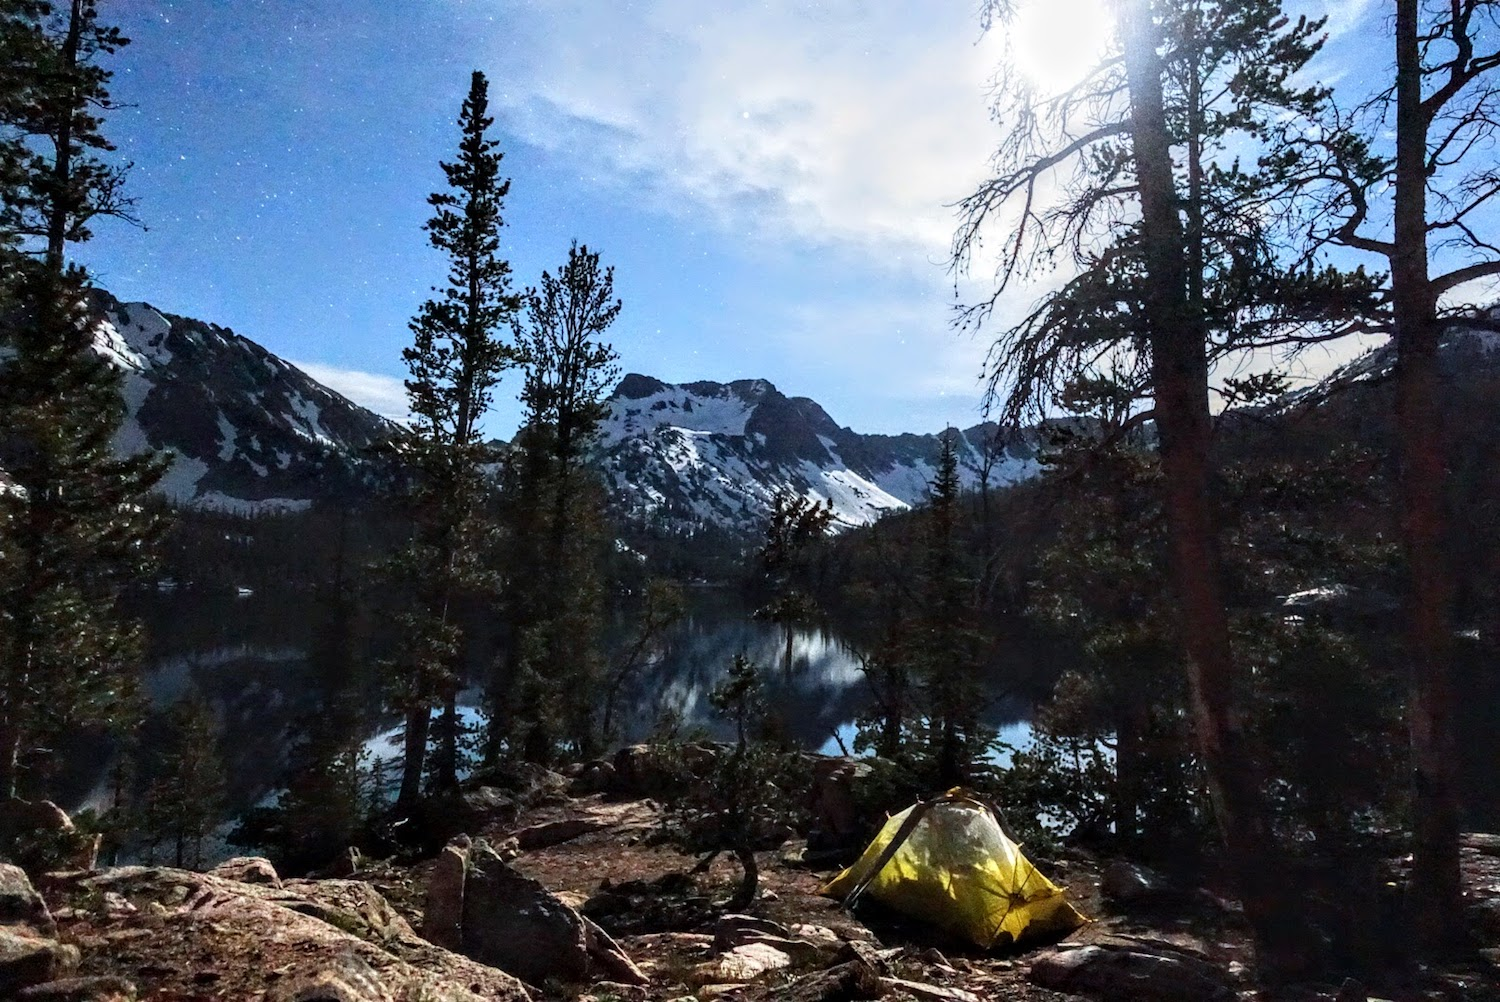 Our campsite at Imogene Lake, under the stars and moon.